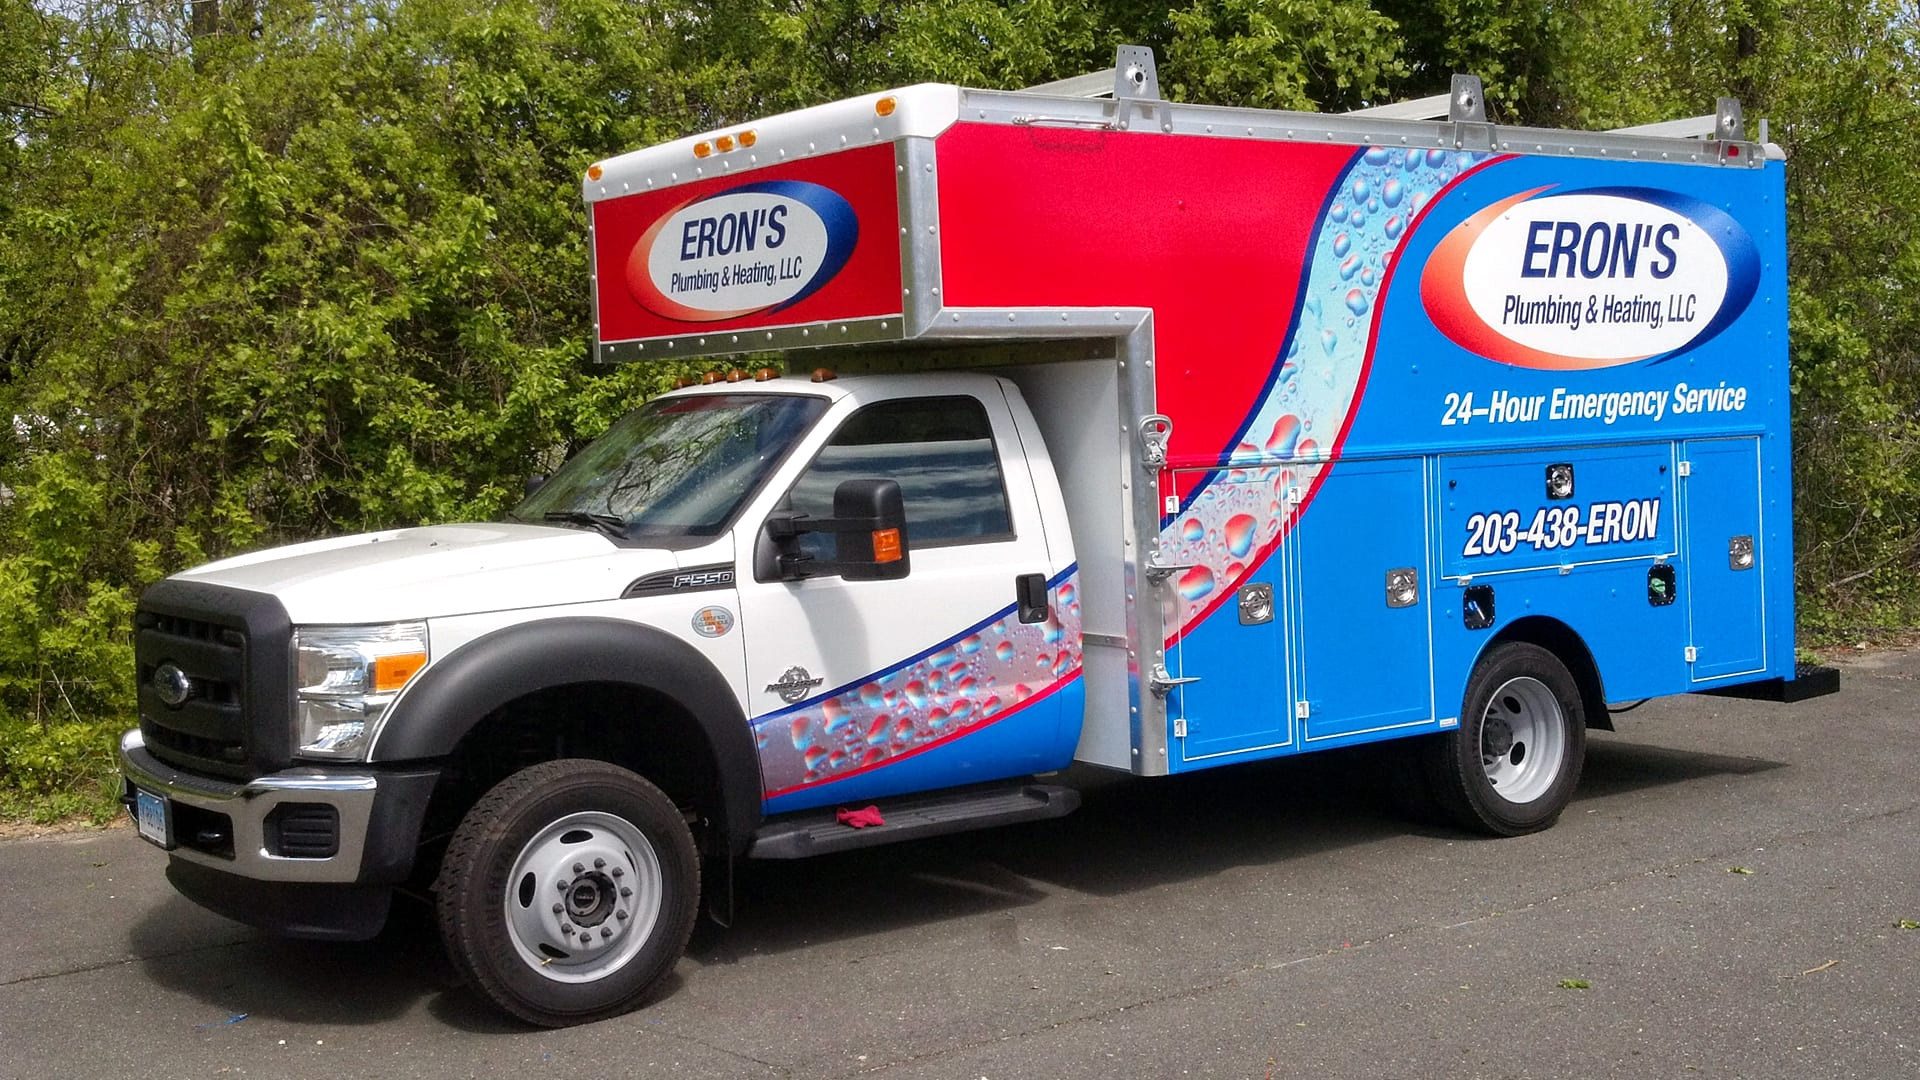 Truck wrap advertising a business